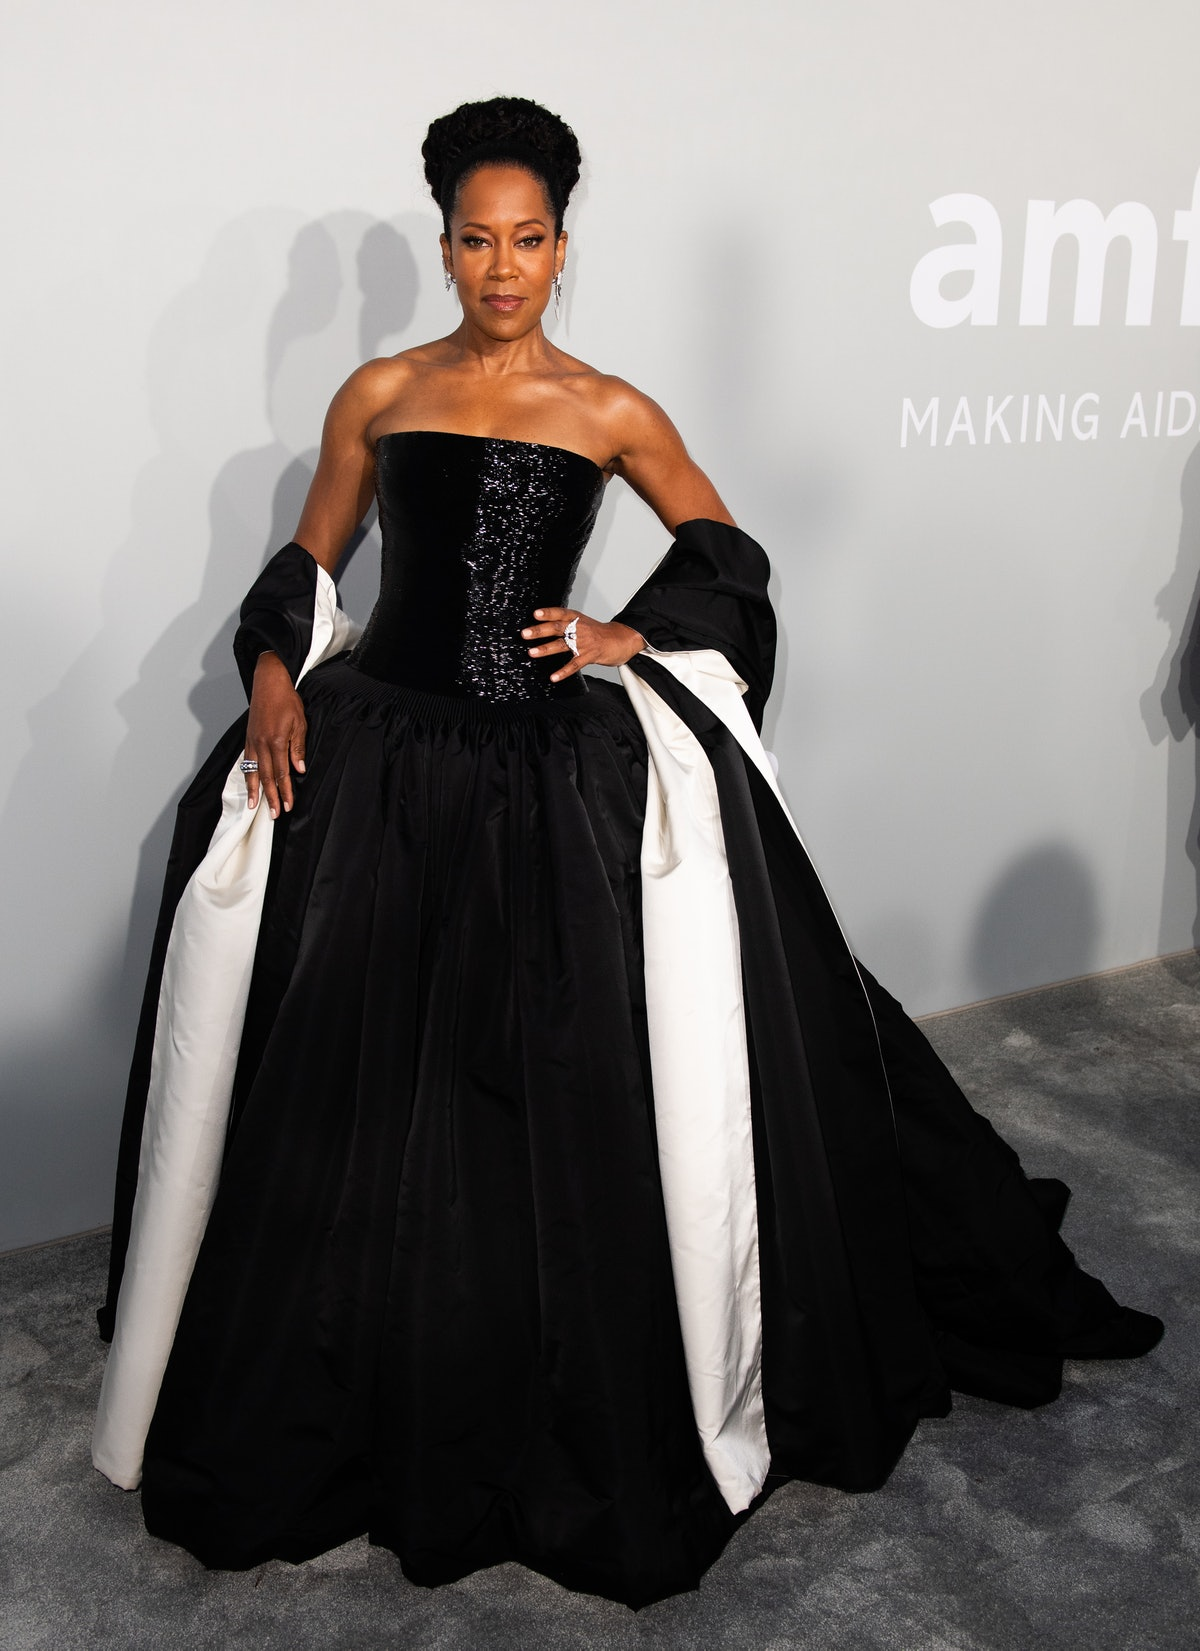 CAP D'ANTIBES, FRANCE - JULY 16: Regina King attends the amfAR Cannes Gala 2021 during the 74th Annual Cannes Film Festival at Villa Eilenroc on July 16, 2021 in Cap d'Antibes, France. (Photo by Samir Hussein/WireImage)